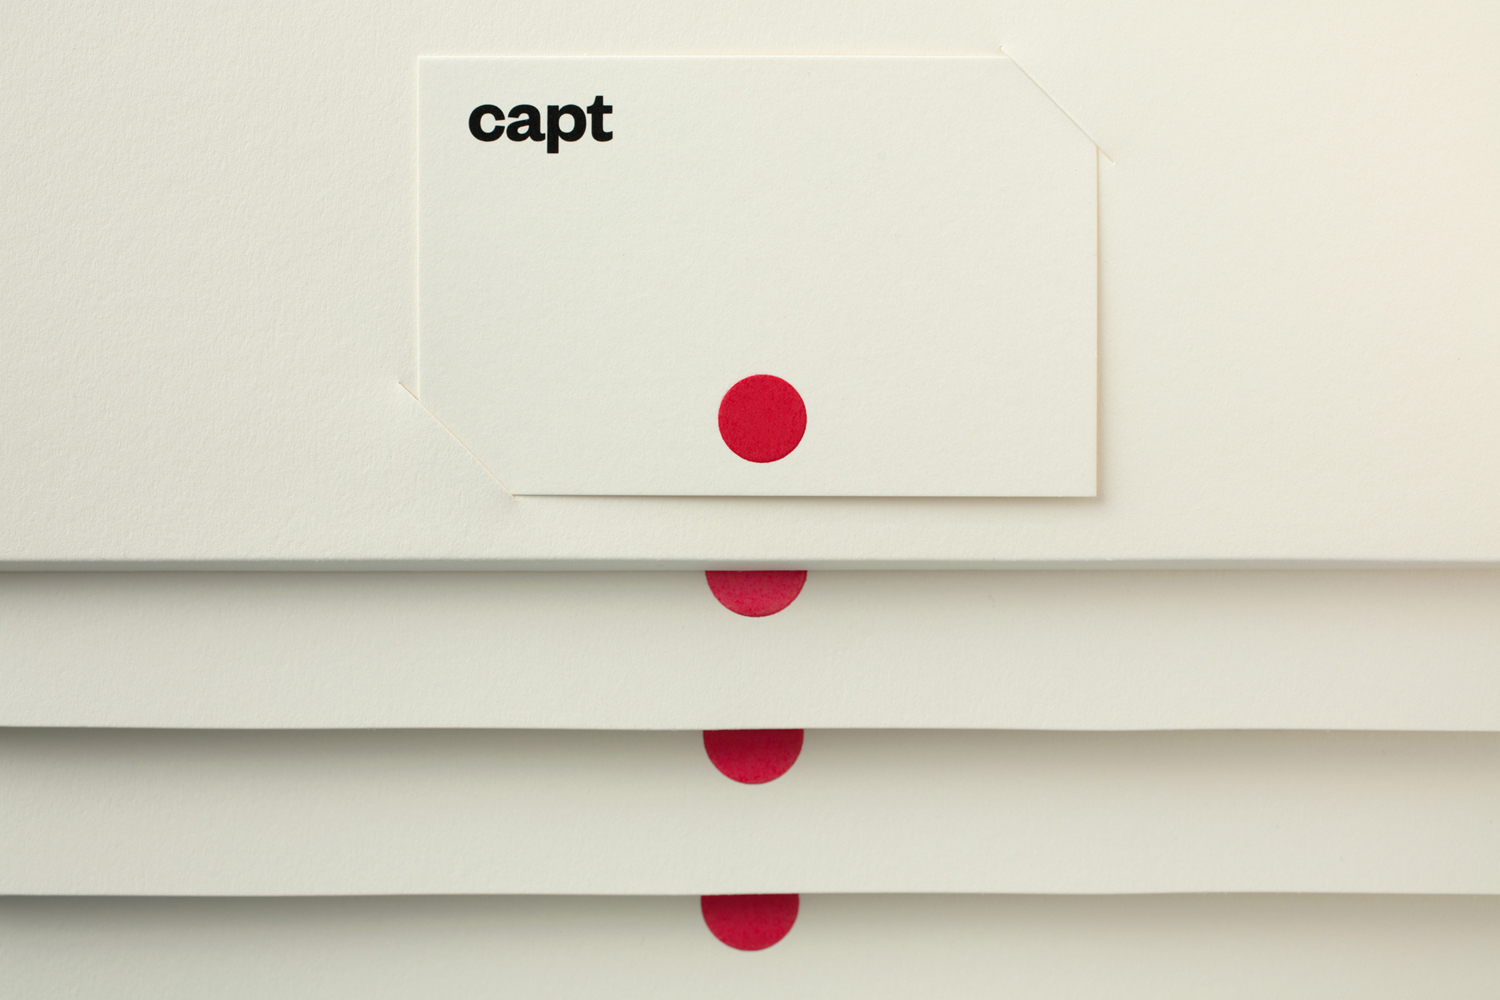 Brand Identity and stationery designed by Bunch for video making app and web-based market platform Capt